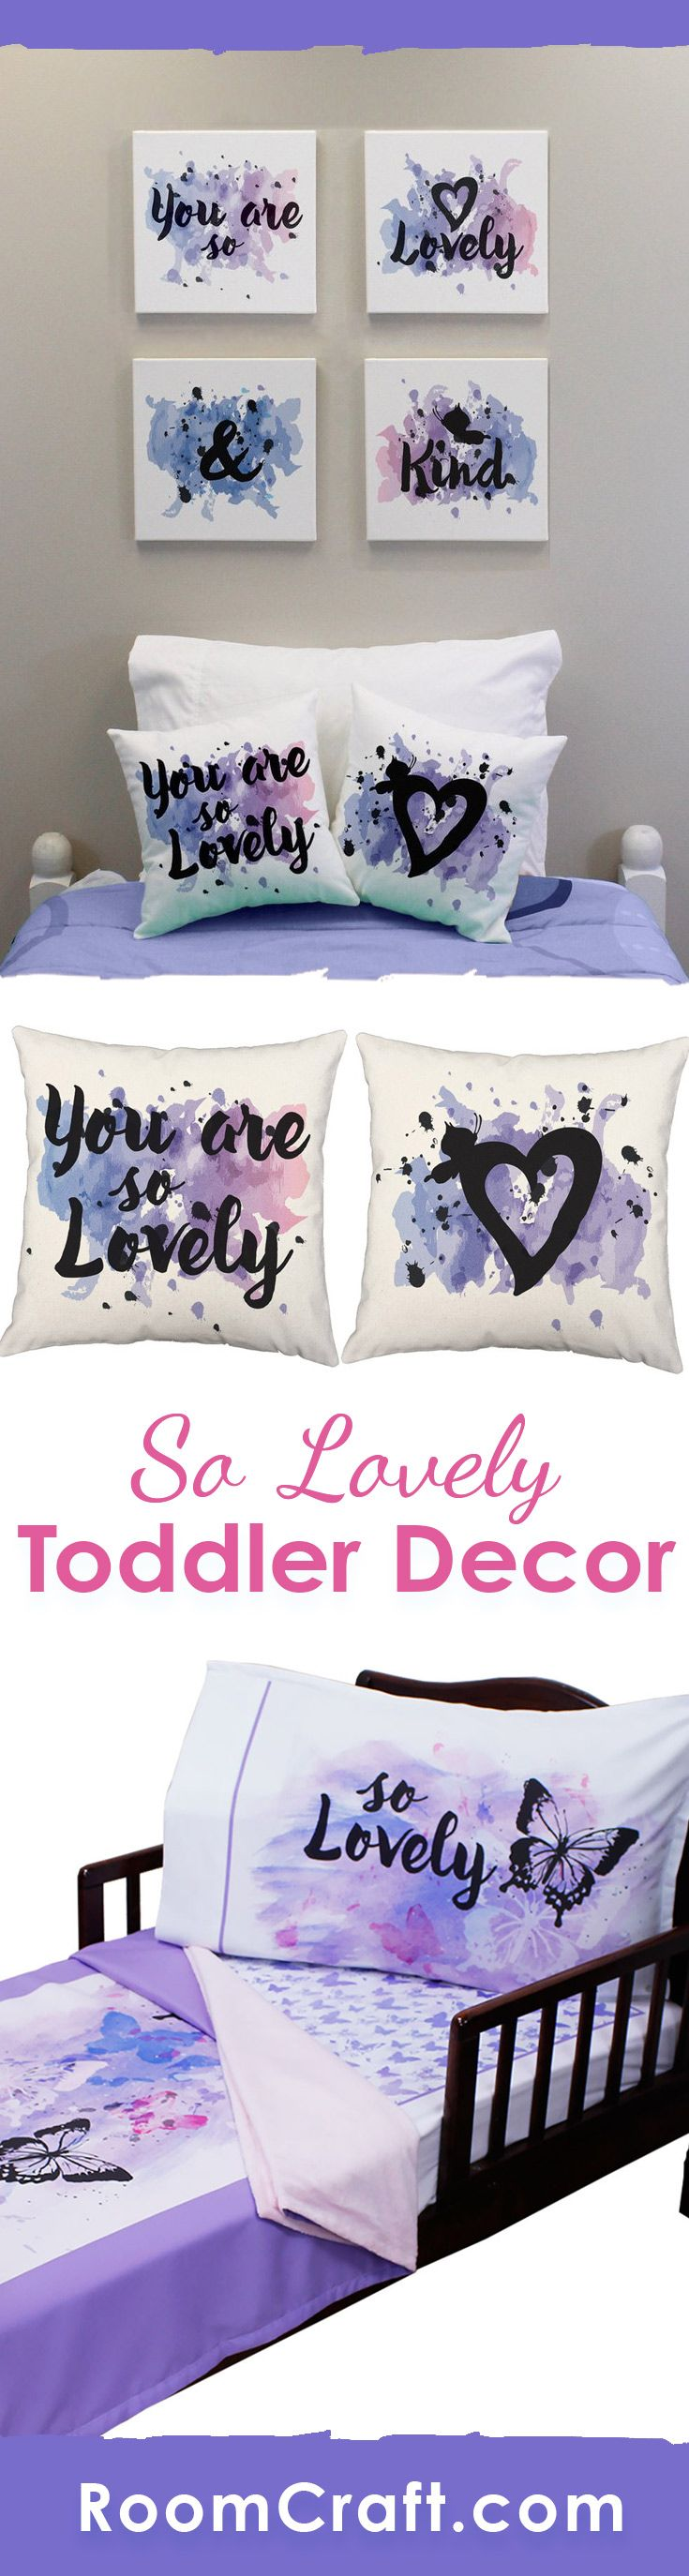 oh so lovely toddler bedding set